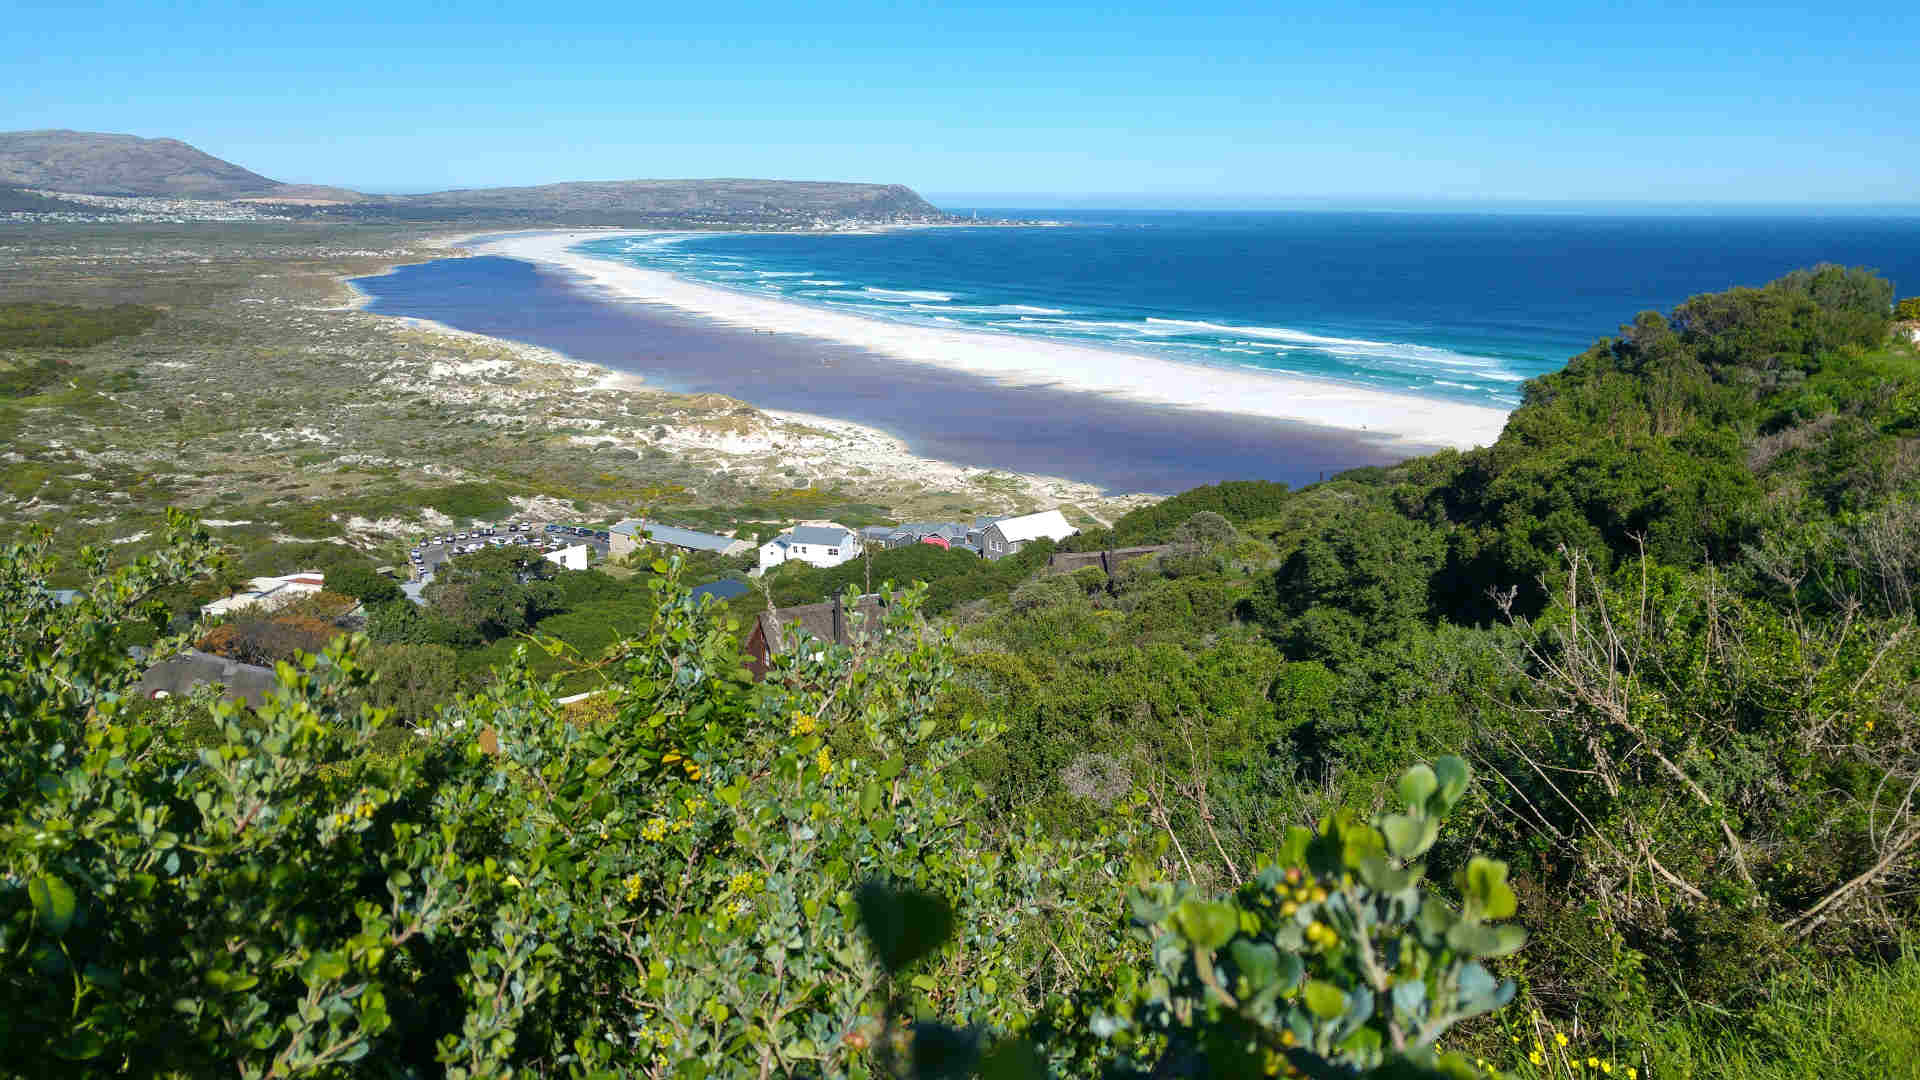 View of the Beach from Chapman's Peak above Monkey Valley